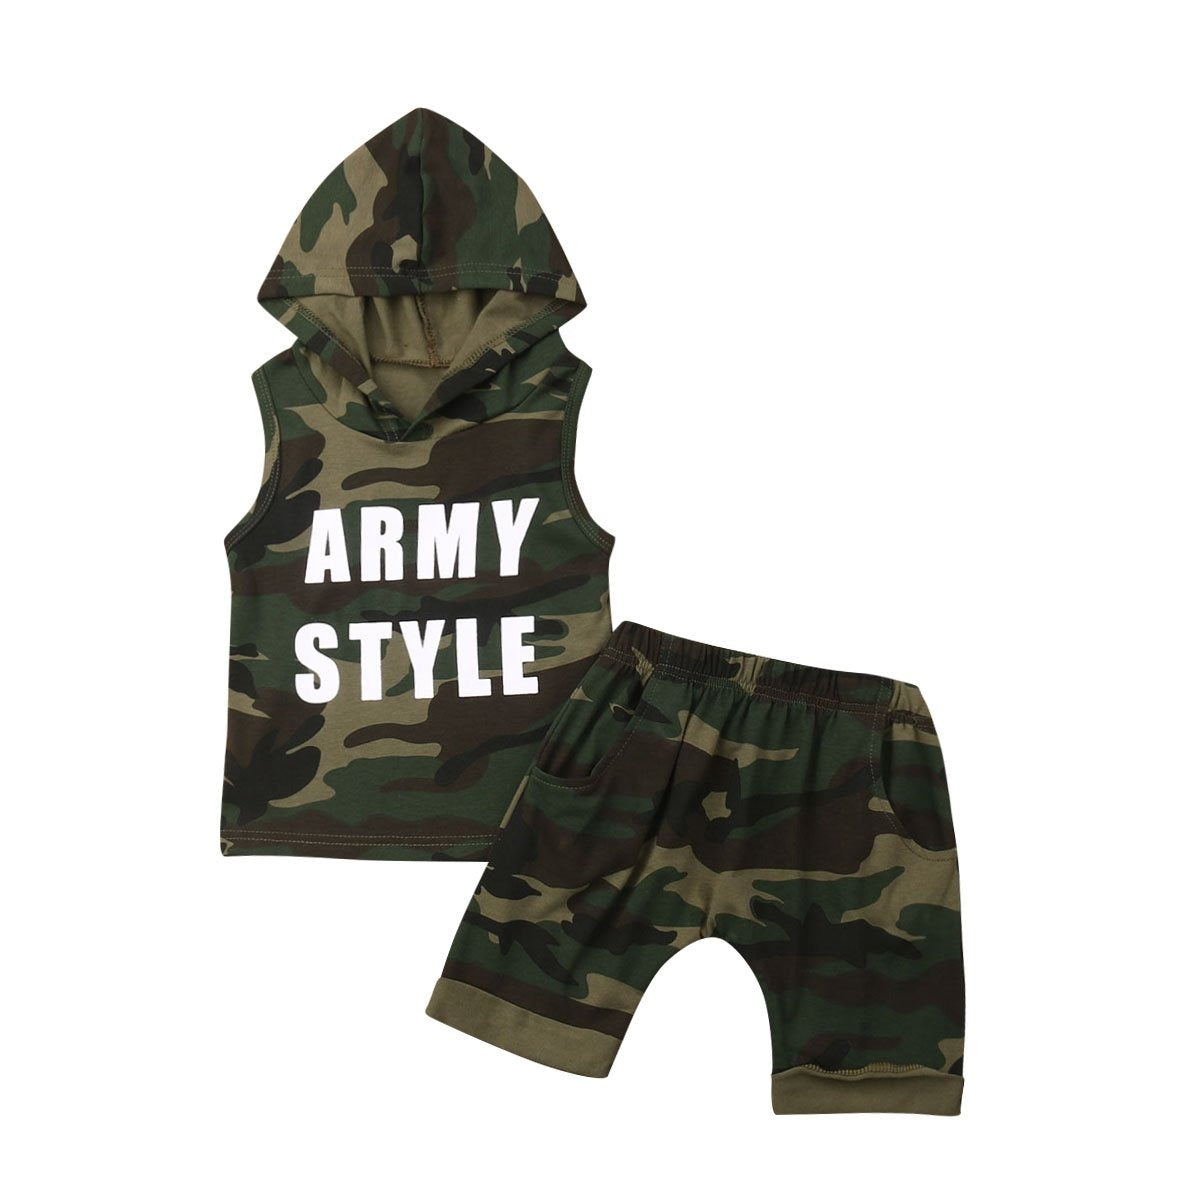 Army Style set - Lillys little luxuries